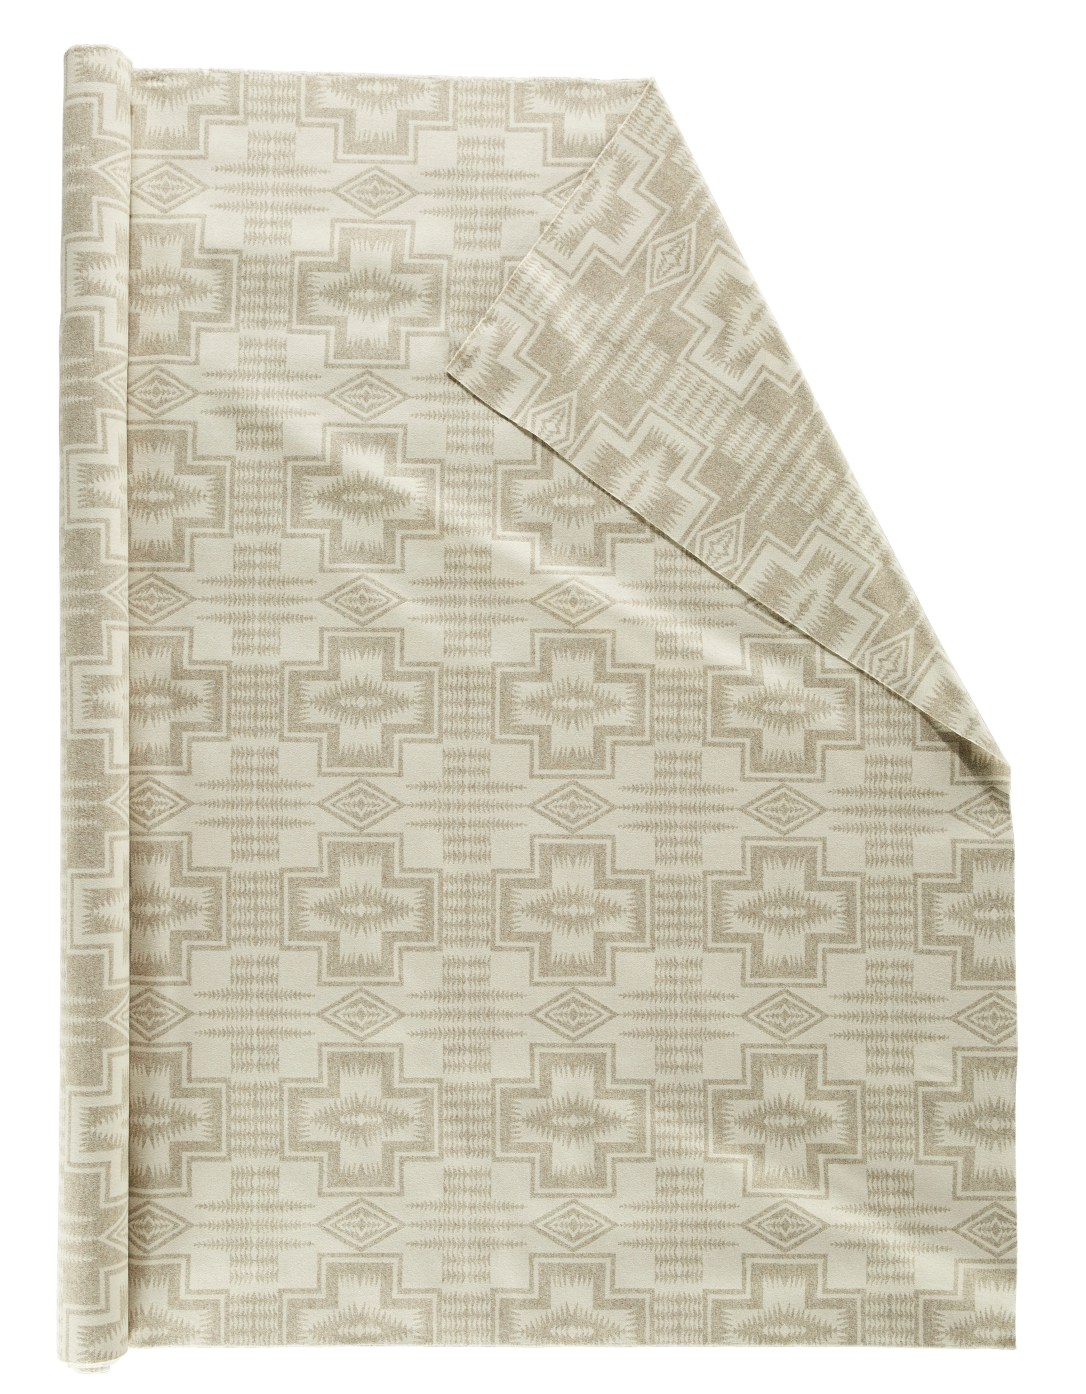 Roll of pendleton wool fabric in Harding tonal, a beige and off white pattern with crosses and arrows, very muted and subtle.